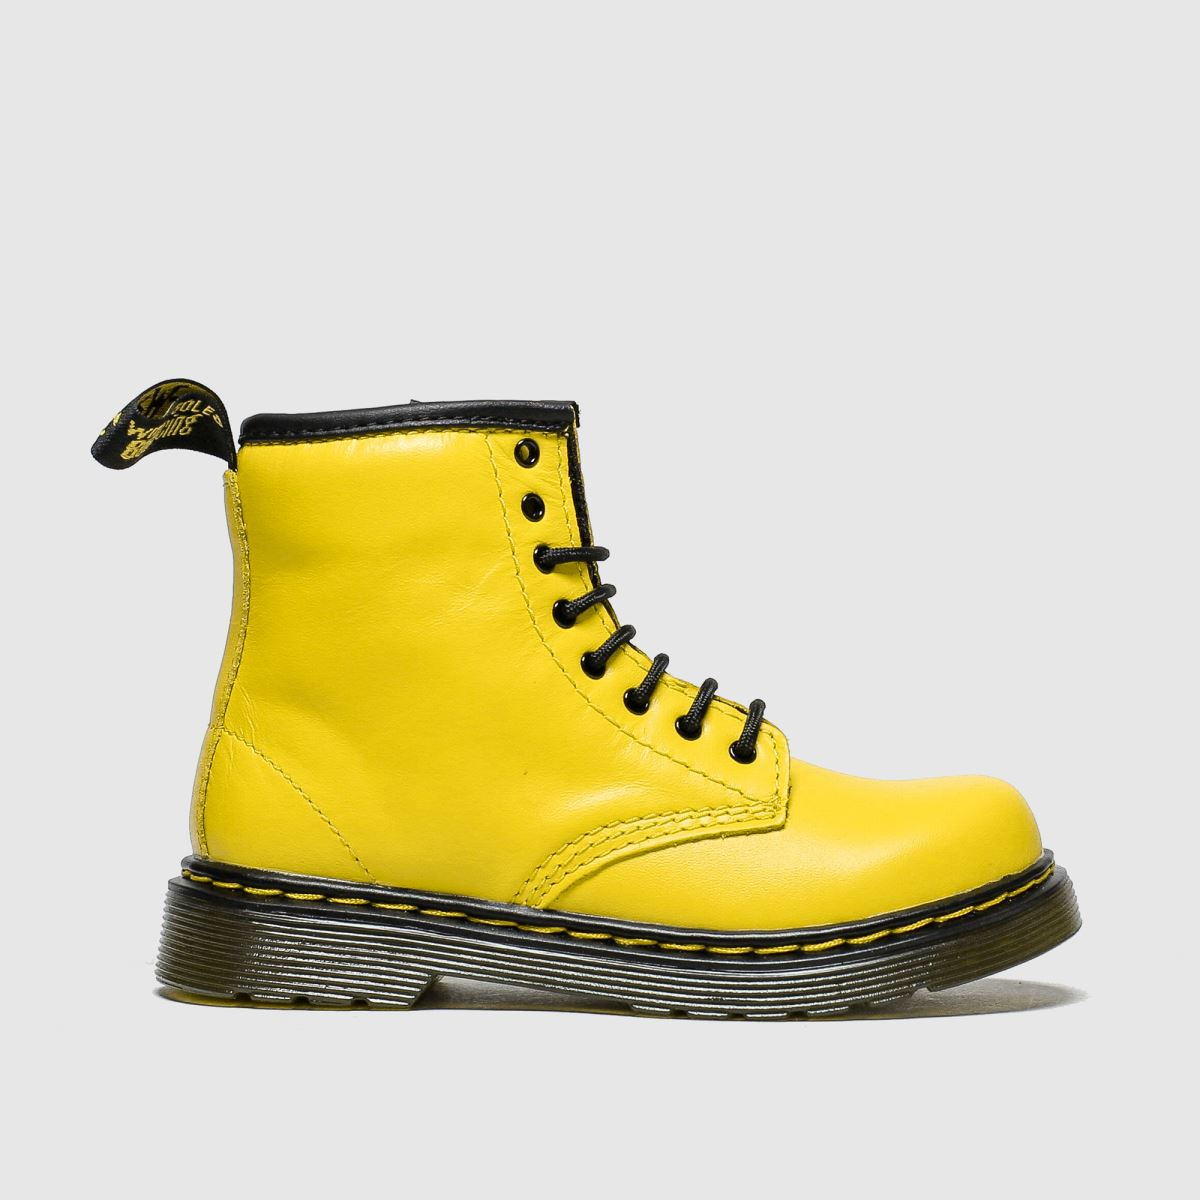 Dr Martens Yellow 1460 Boots Toddler